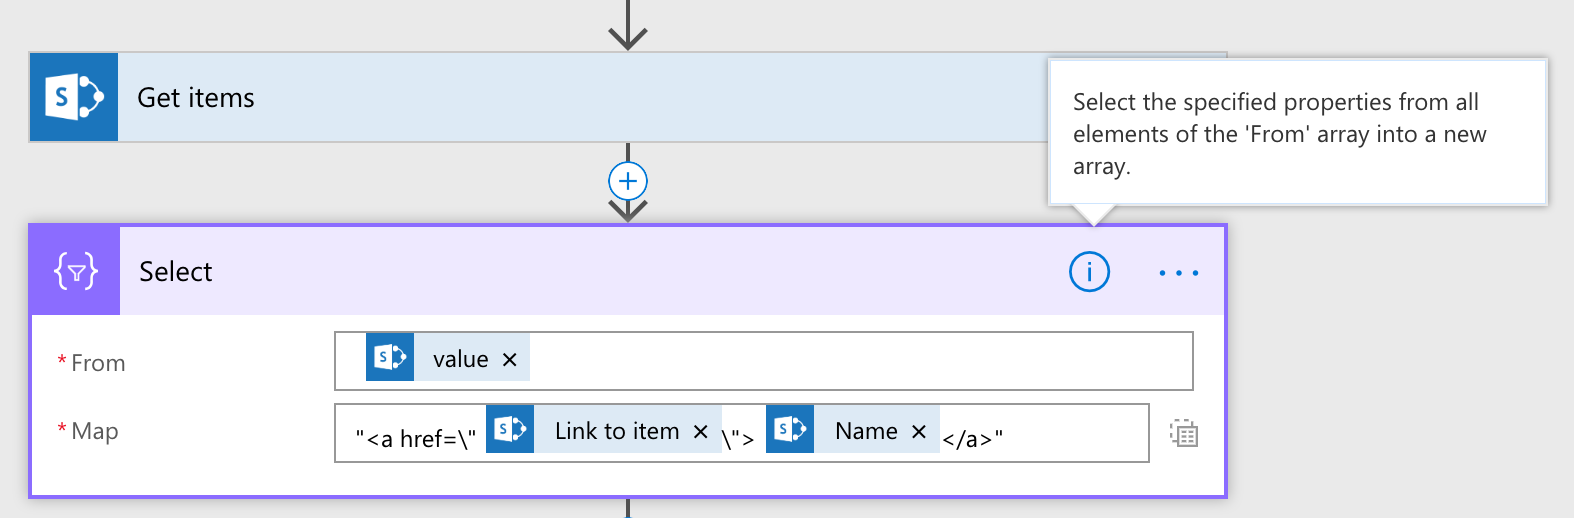 Building HTML tables in your flows for sending digest emails